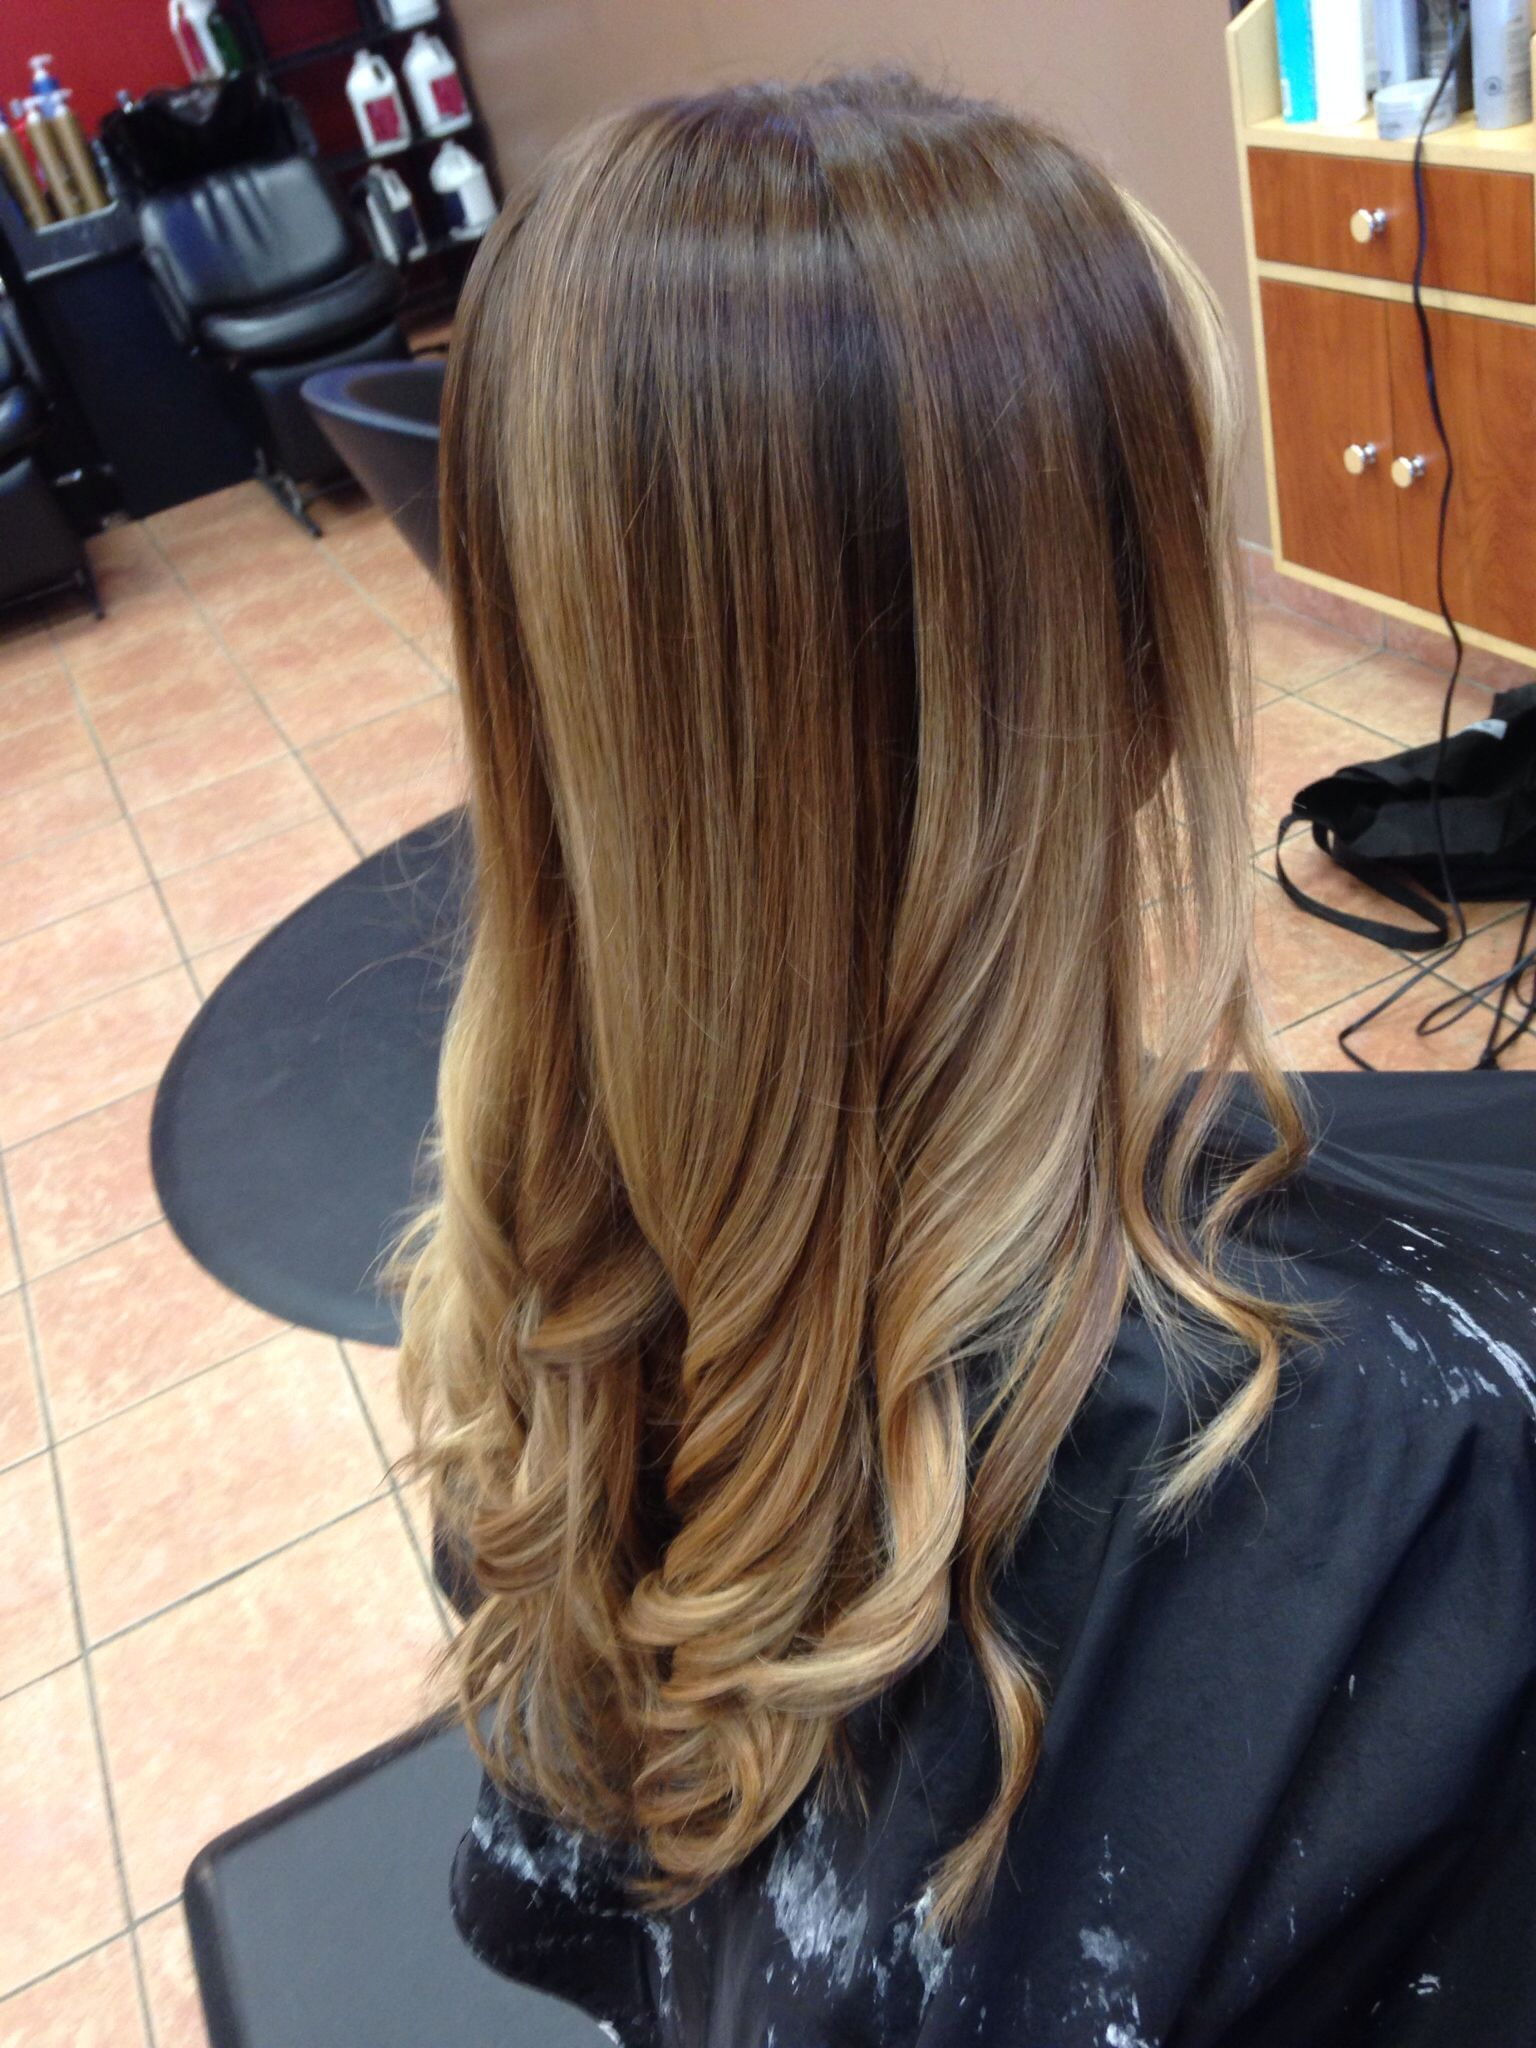 Black hair with blonde ends - Balayage Brown To Blonde Multi Tones Flatiron Curls